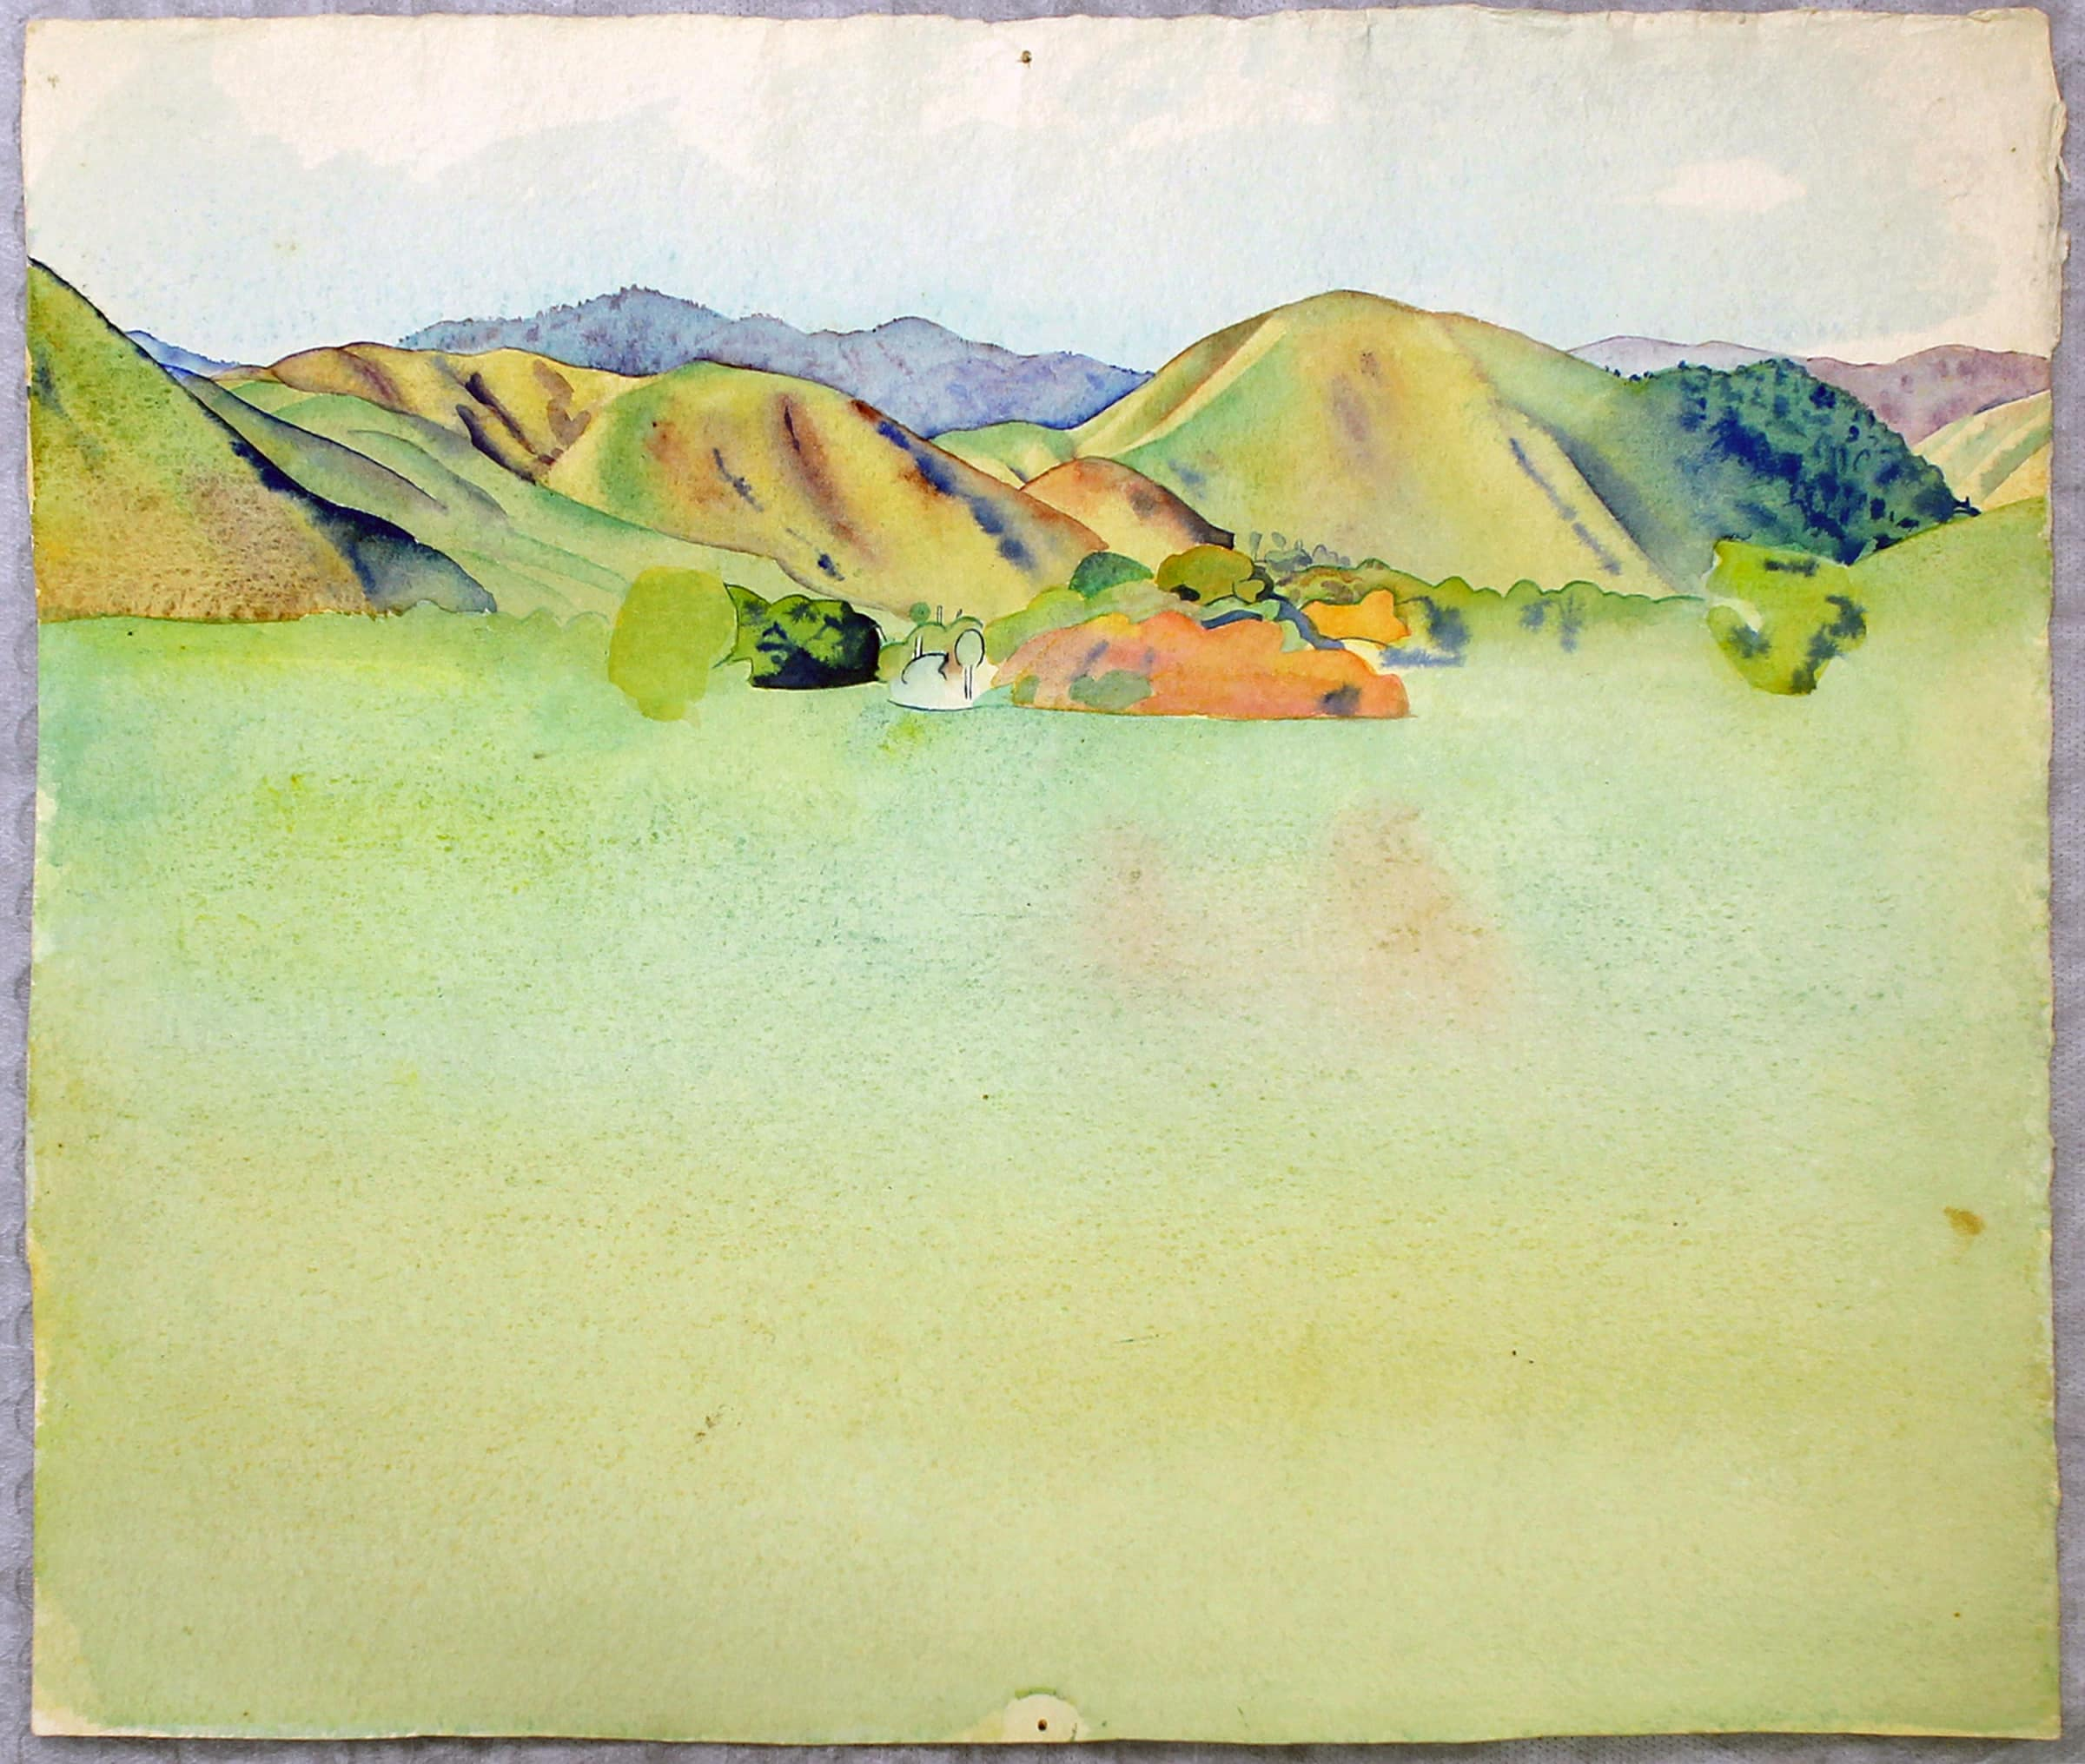 <span class=&#34;link fancybox-details-link&#34;><a href=&#34;/exhibitions/36/works/artworks6396/&#34;>View Detail Page</a></span><div class=&#34;medium&#34;>Watercolour on paper</div> <div class=&#34;dimensions&#34;>11.3 x 12.8 in<br />28.6 x 32.6 cm</div>